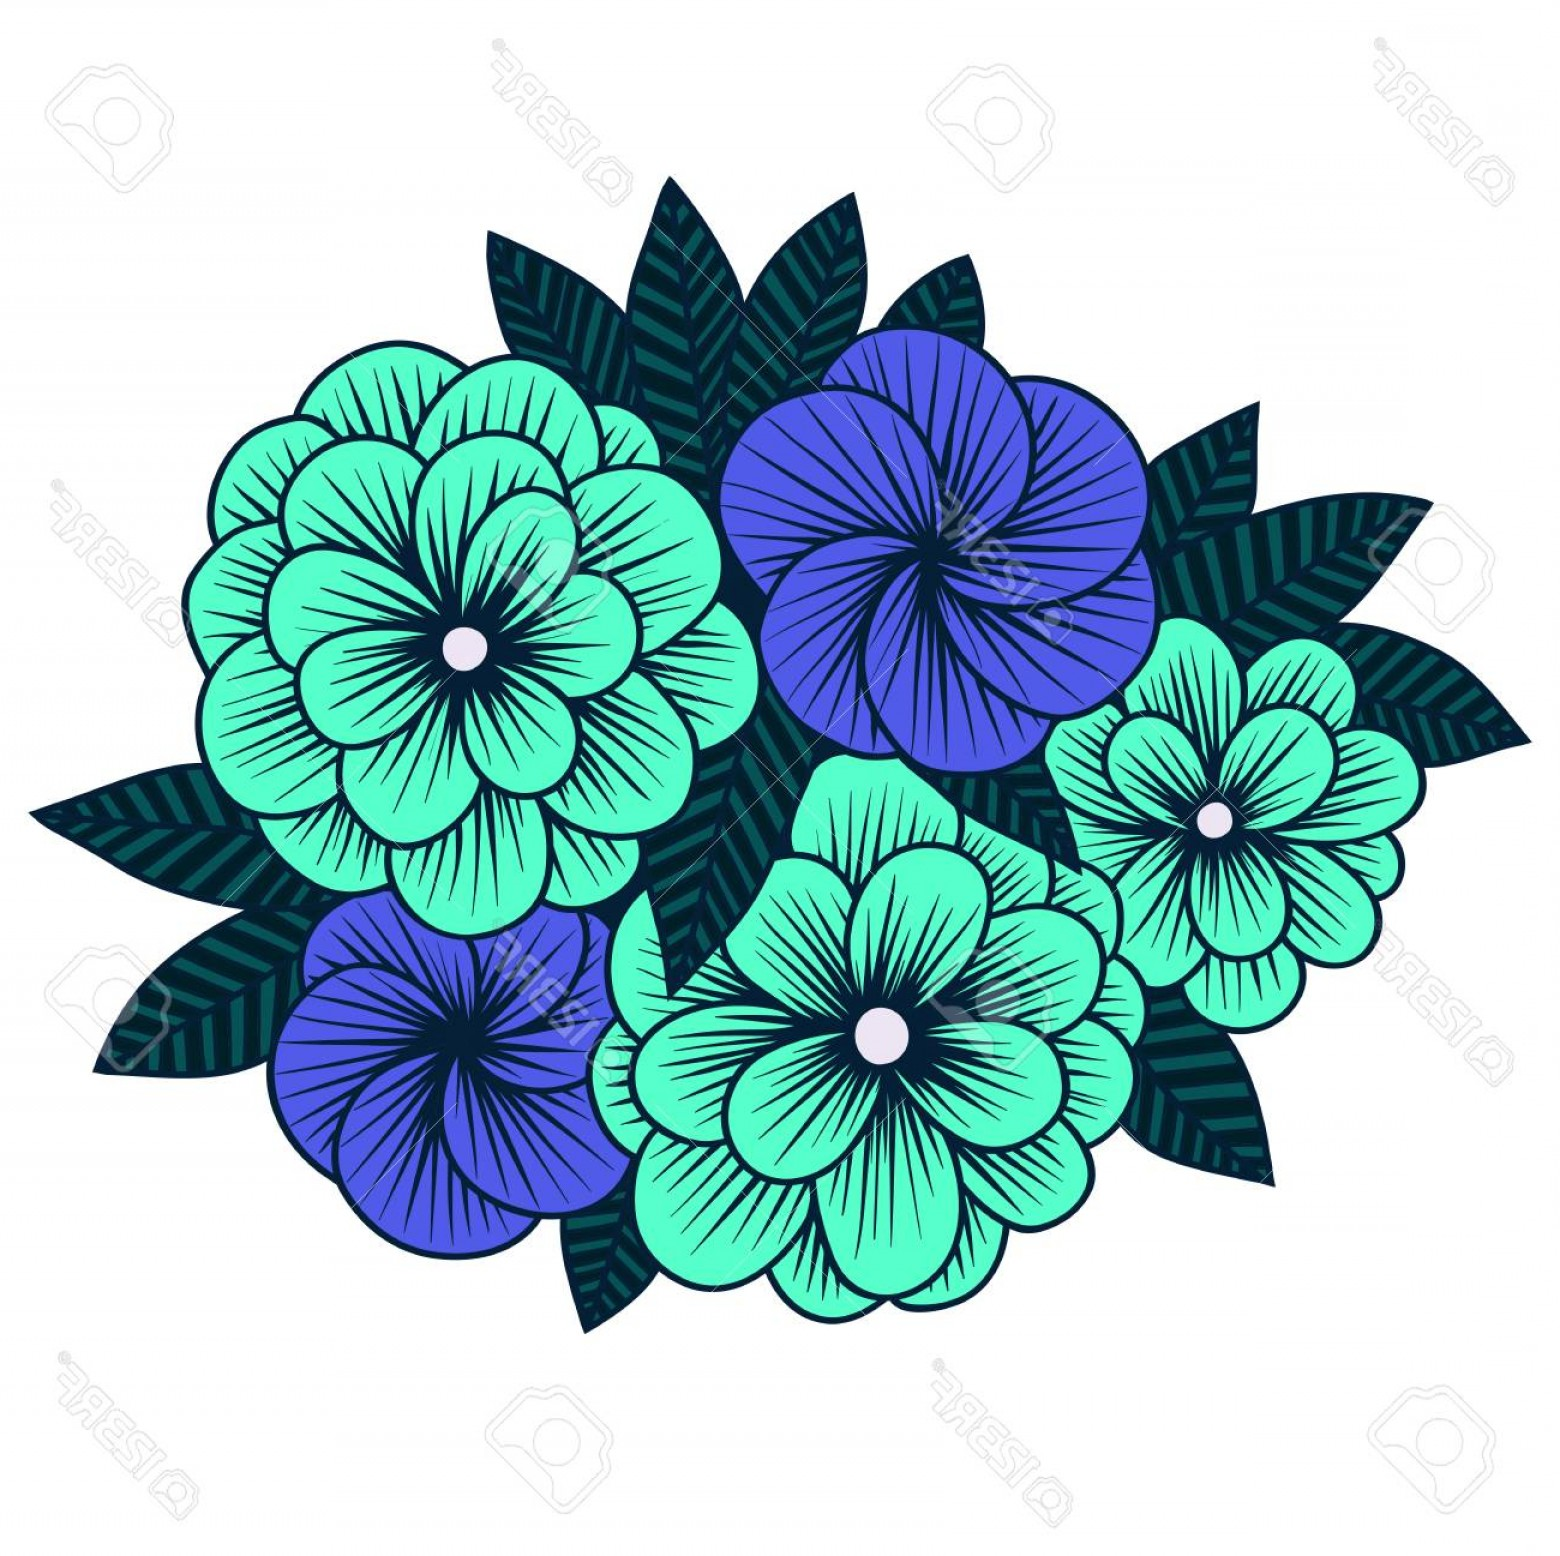 Hydrangea Vector Graphics: Photostock Vector Vector Graphics Handmade Botanical Illustration Hydrangea Flowers Isolated Object